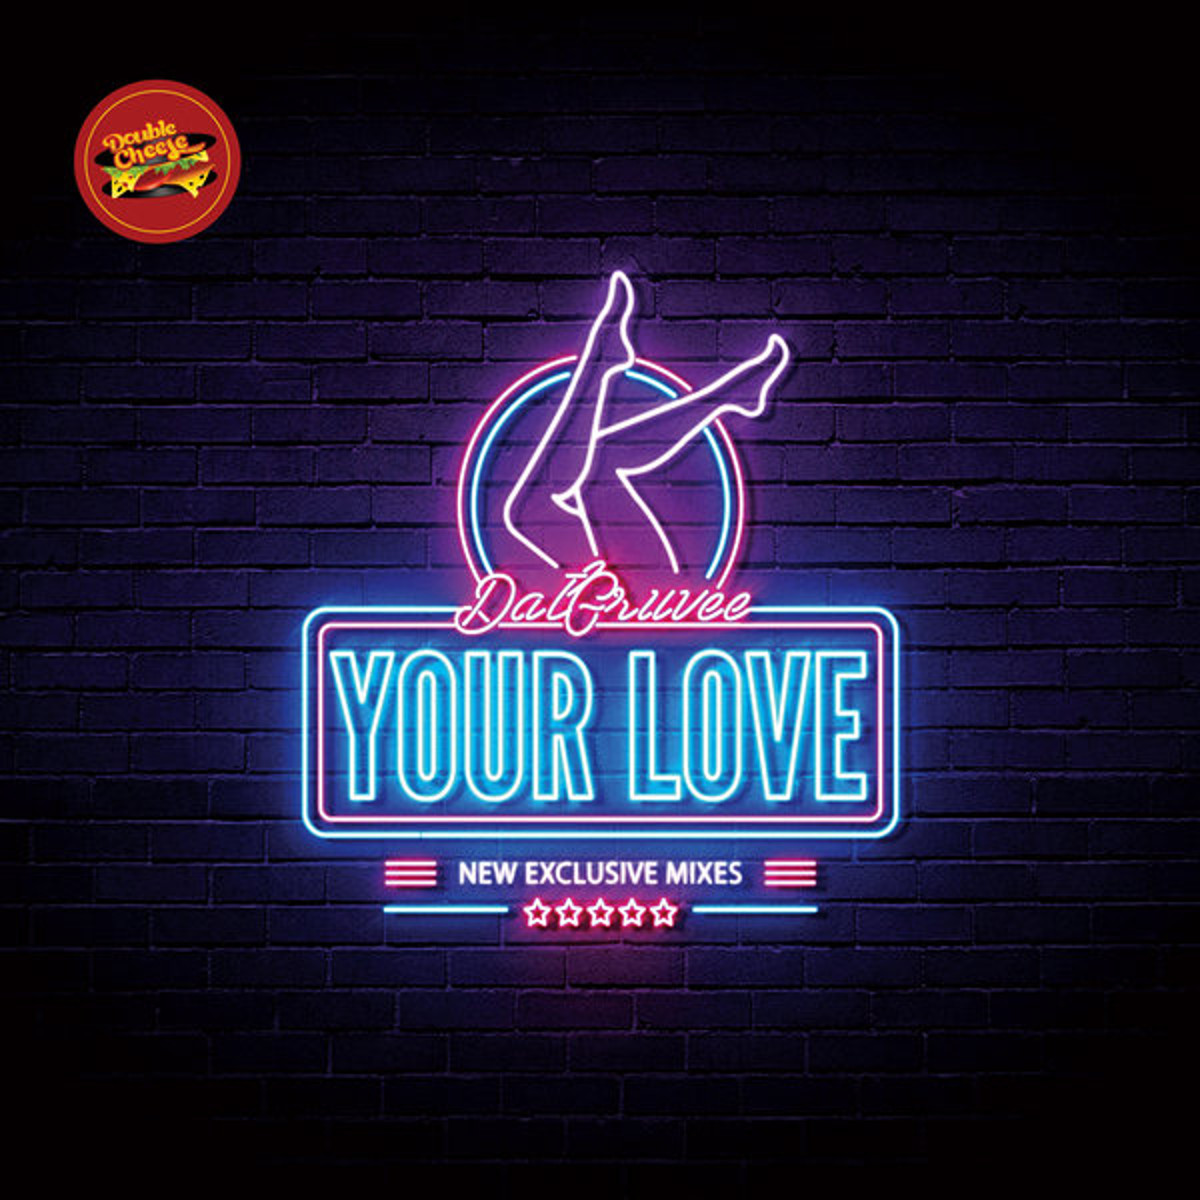 f77a4bf1da0 - Dat Gruvee Ft. Emmanuela – Your Love (Breyth Remix)